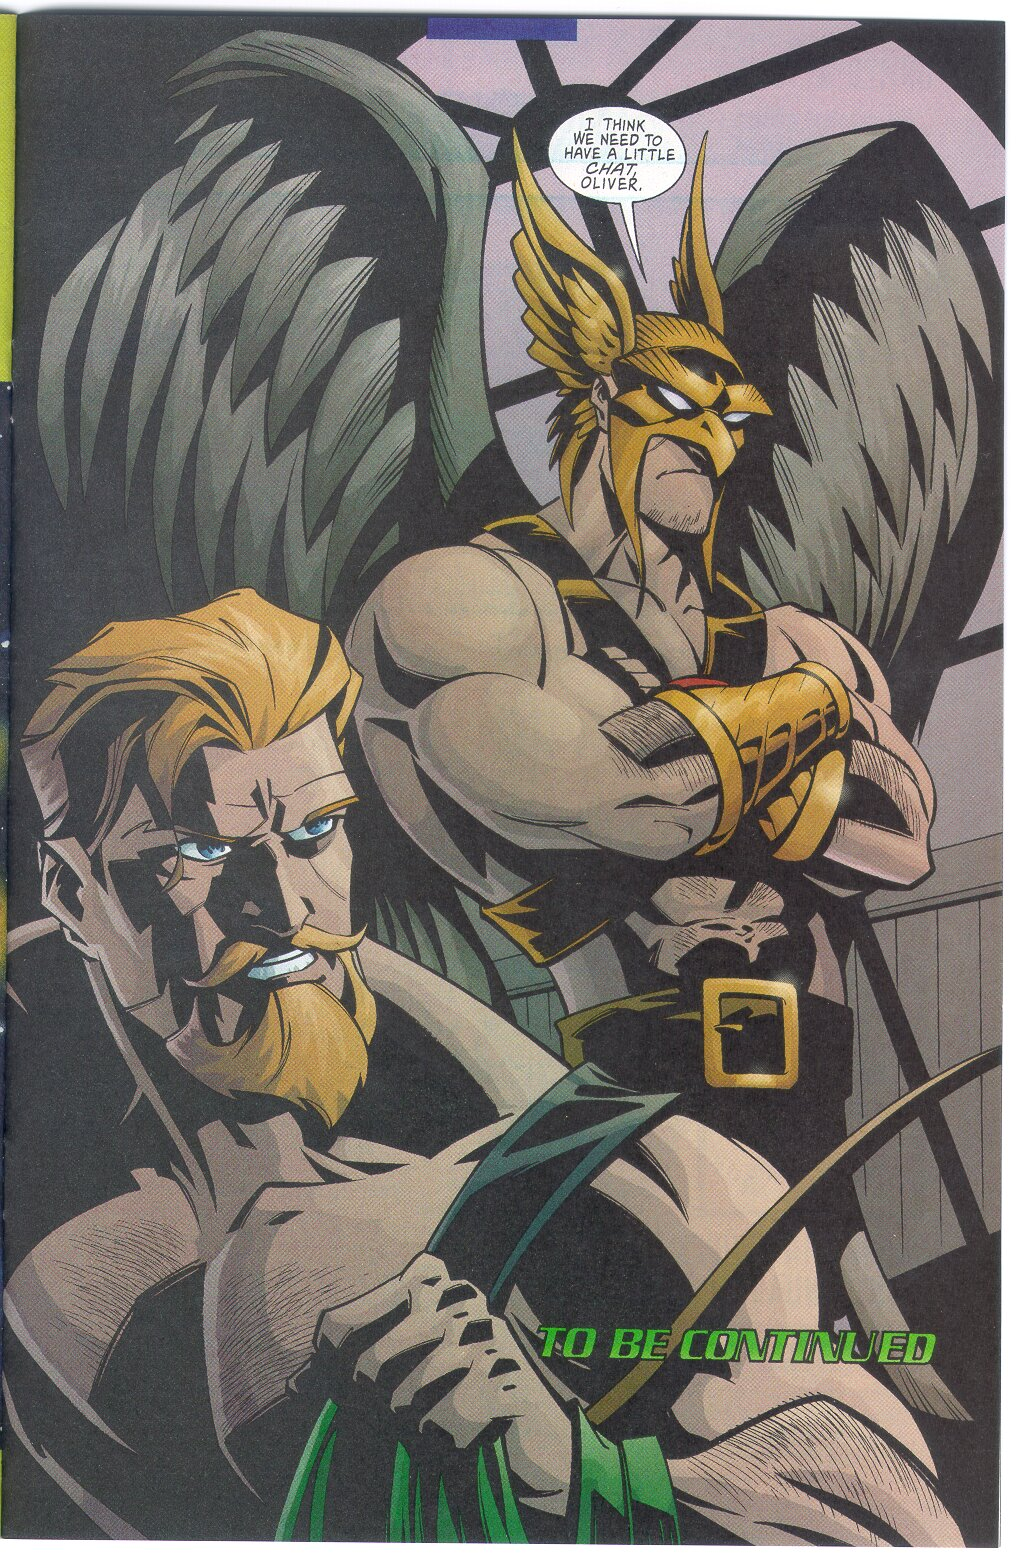 Green Arrow 12 pg22 GreenArrow Hawkman.jpg